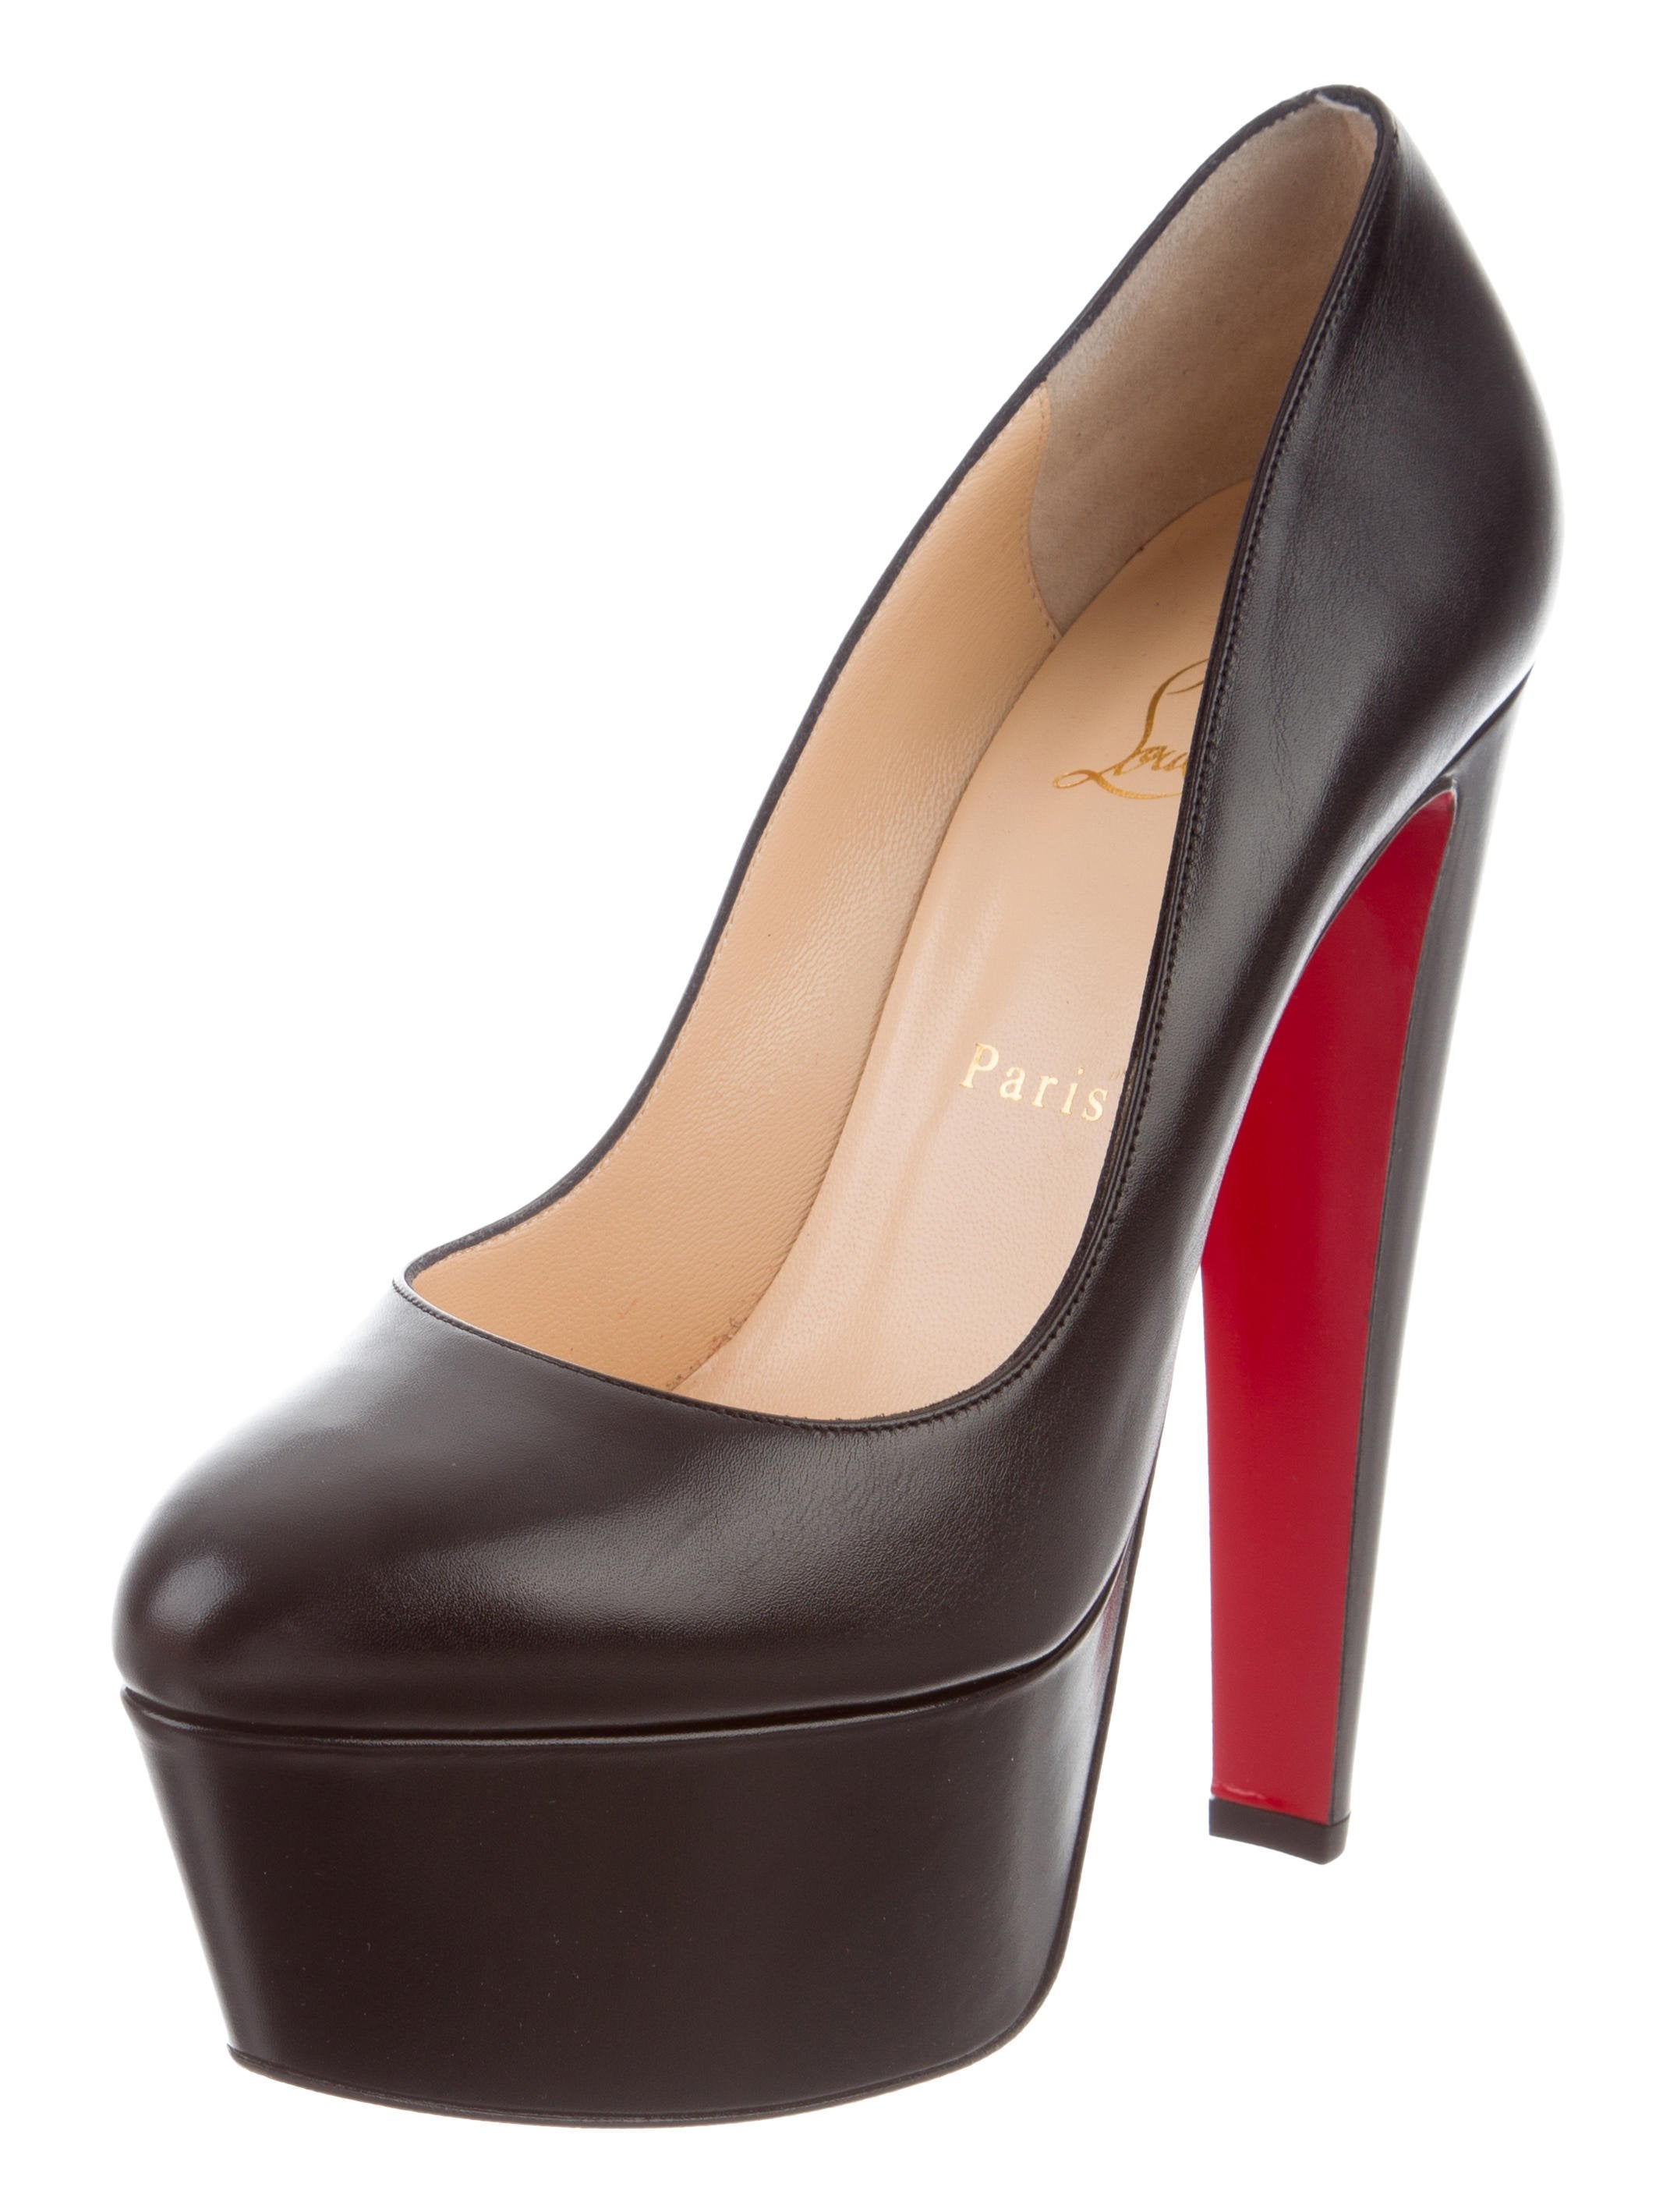 outlet 2015 new Christian Louboutin Alta Vicky 160 Pumps w/ Tags reliable for sale ntZabfK